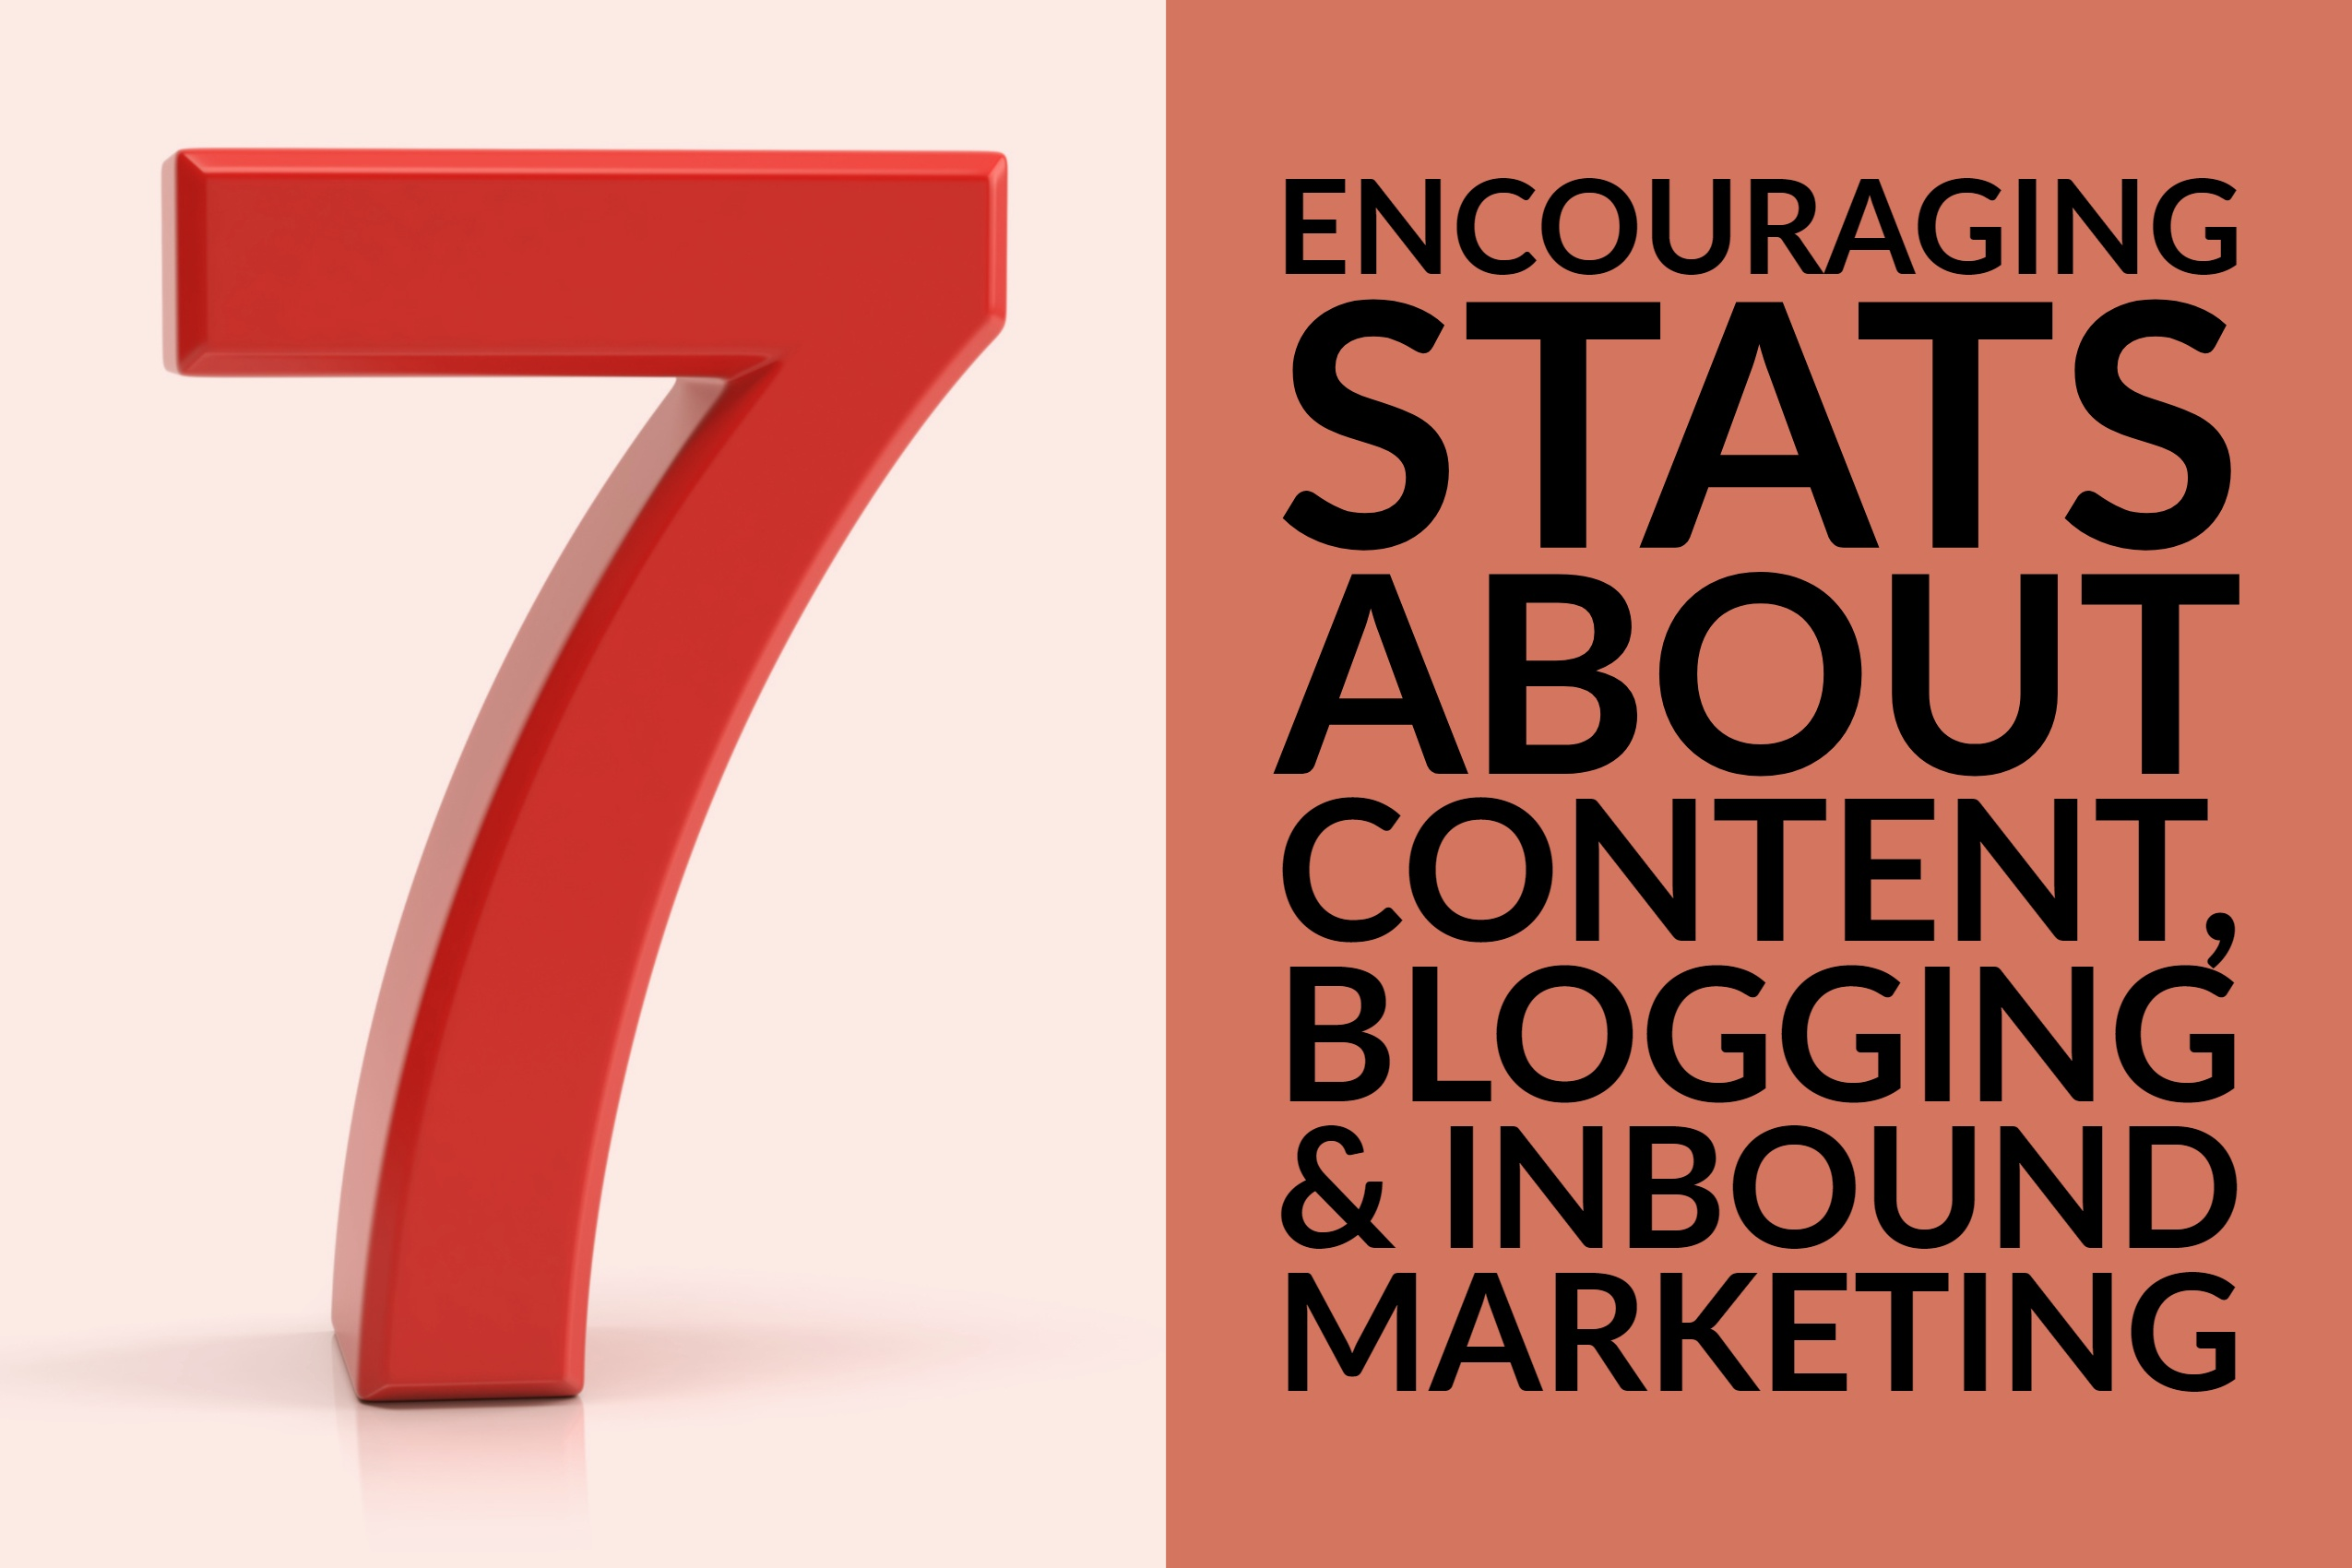 7 Encouraging Stats About Content, Blogging & Inbound Marketing